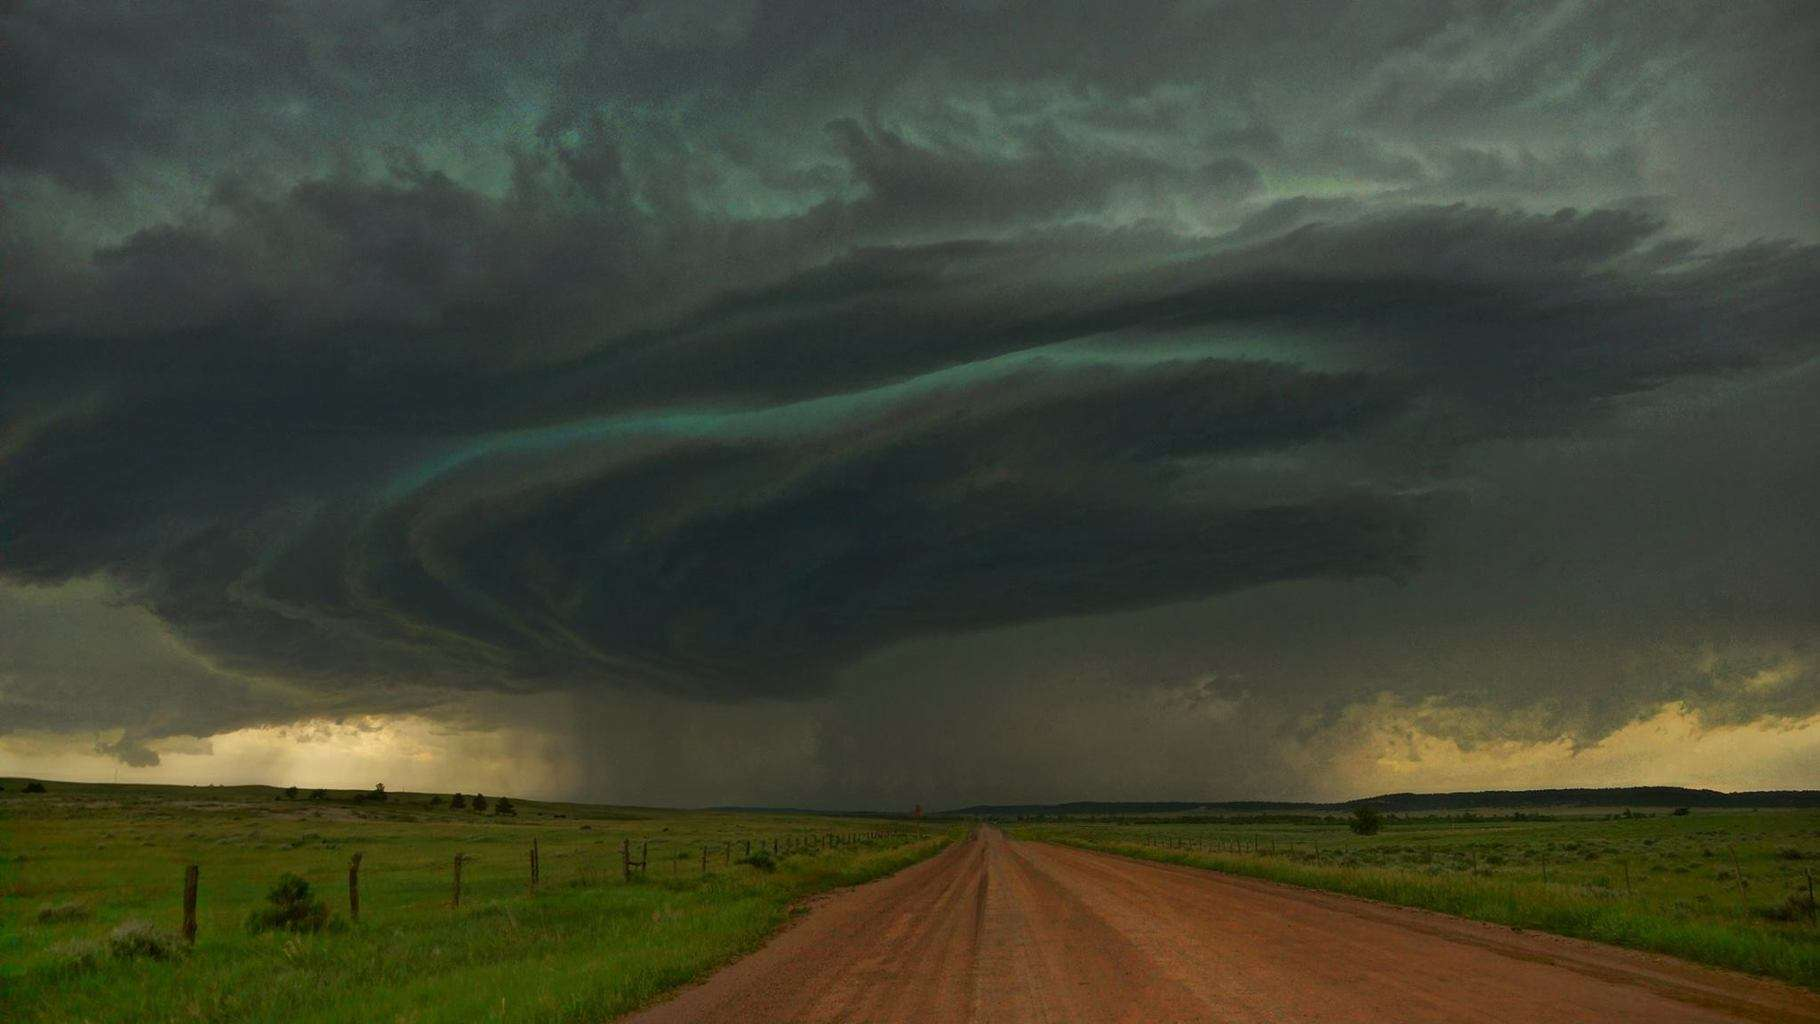 Amazing supercell along the Wyoming/Montana border on June 14, 2014